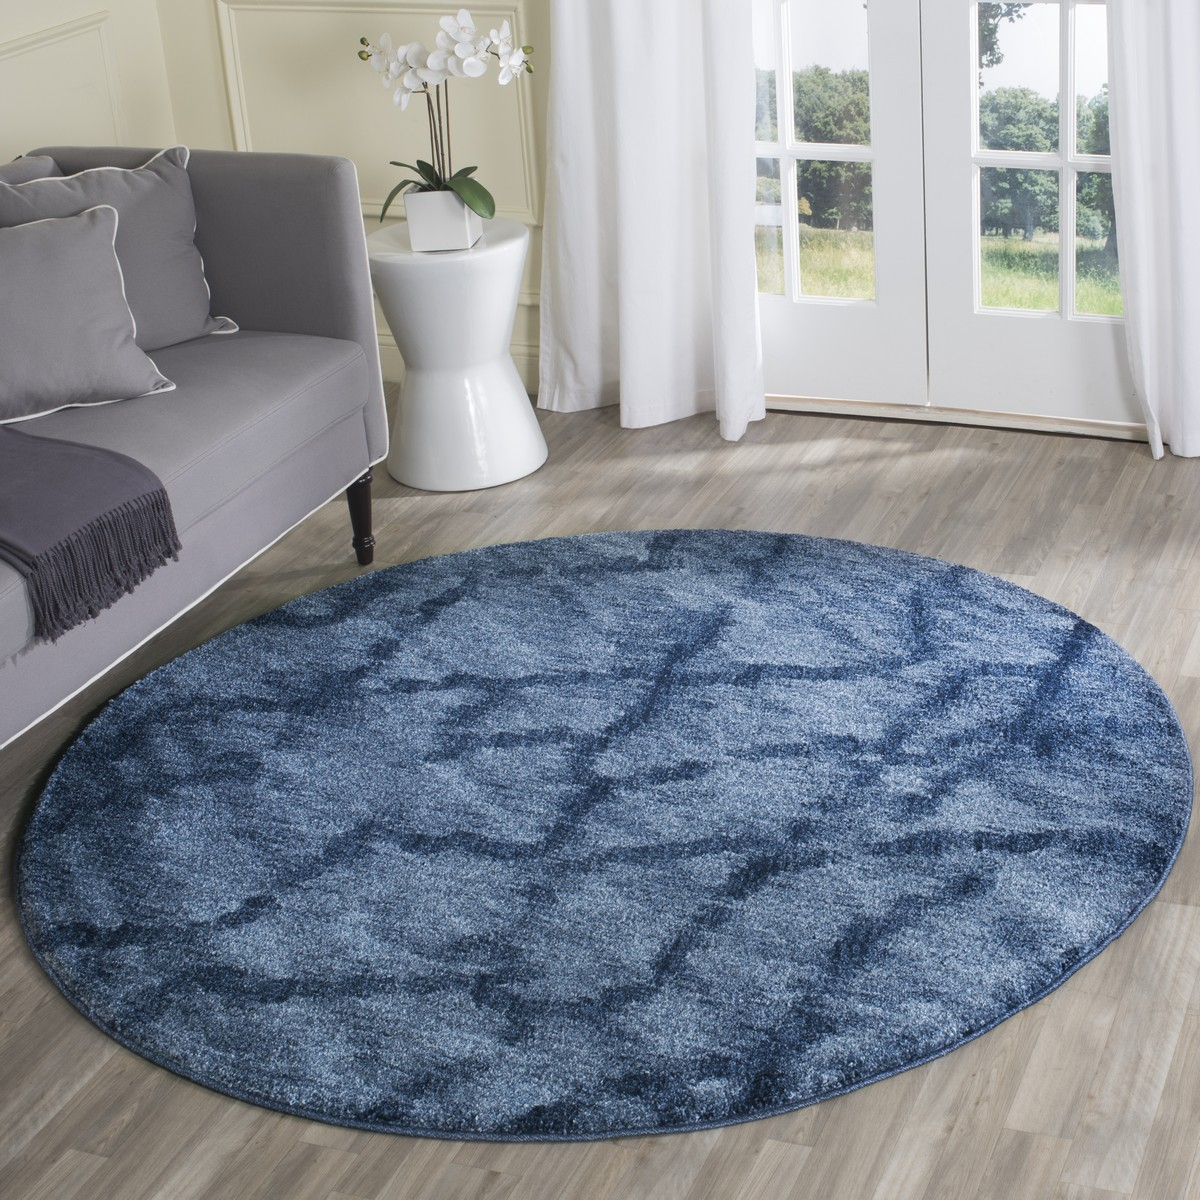 Two-Toned Blue Rugs - Safavieh